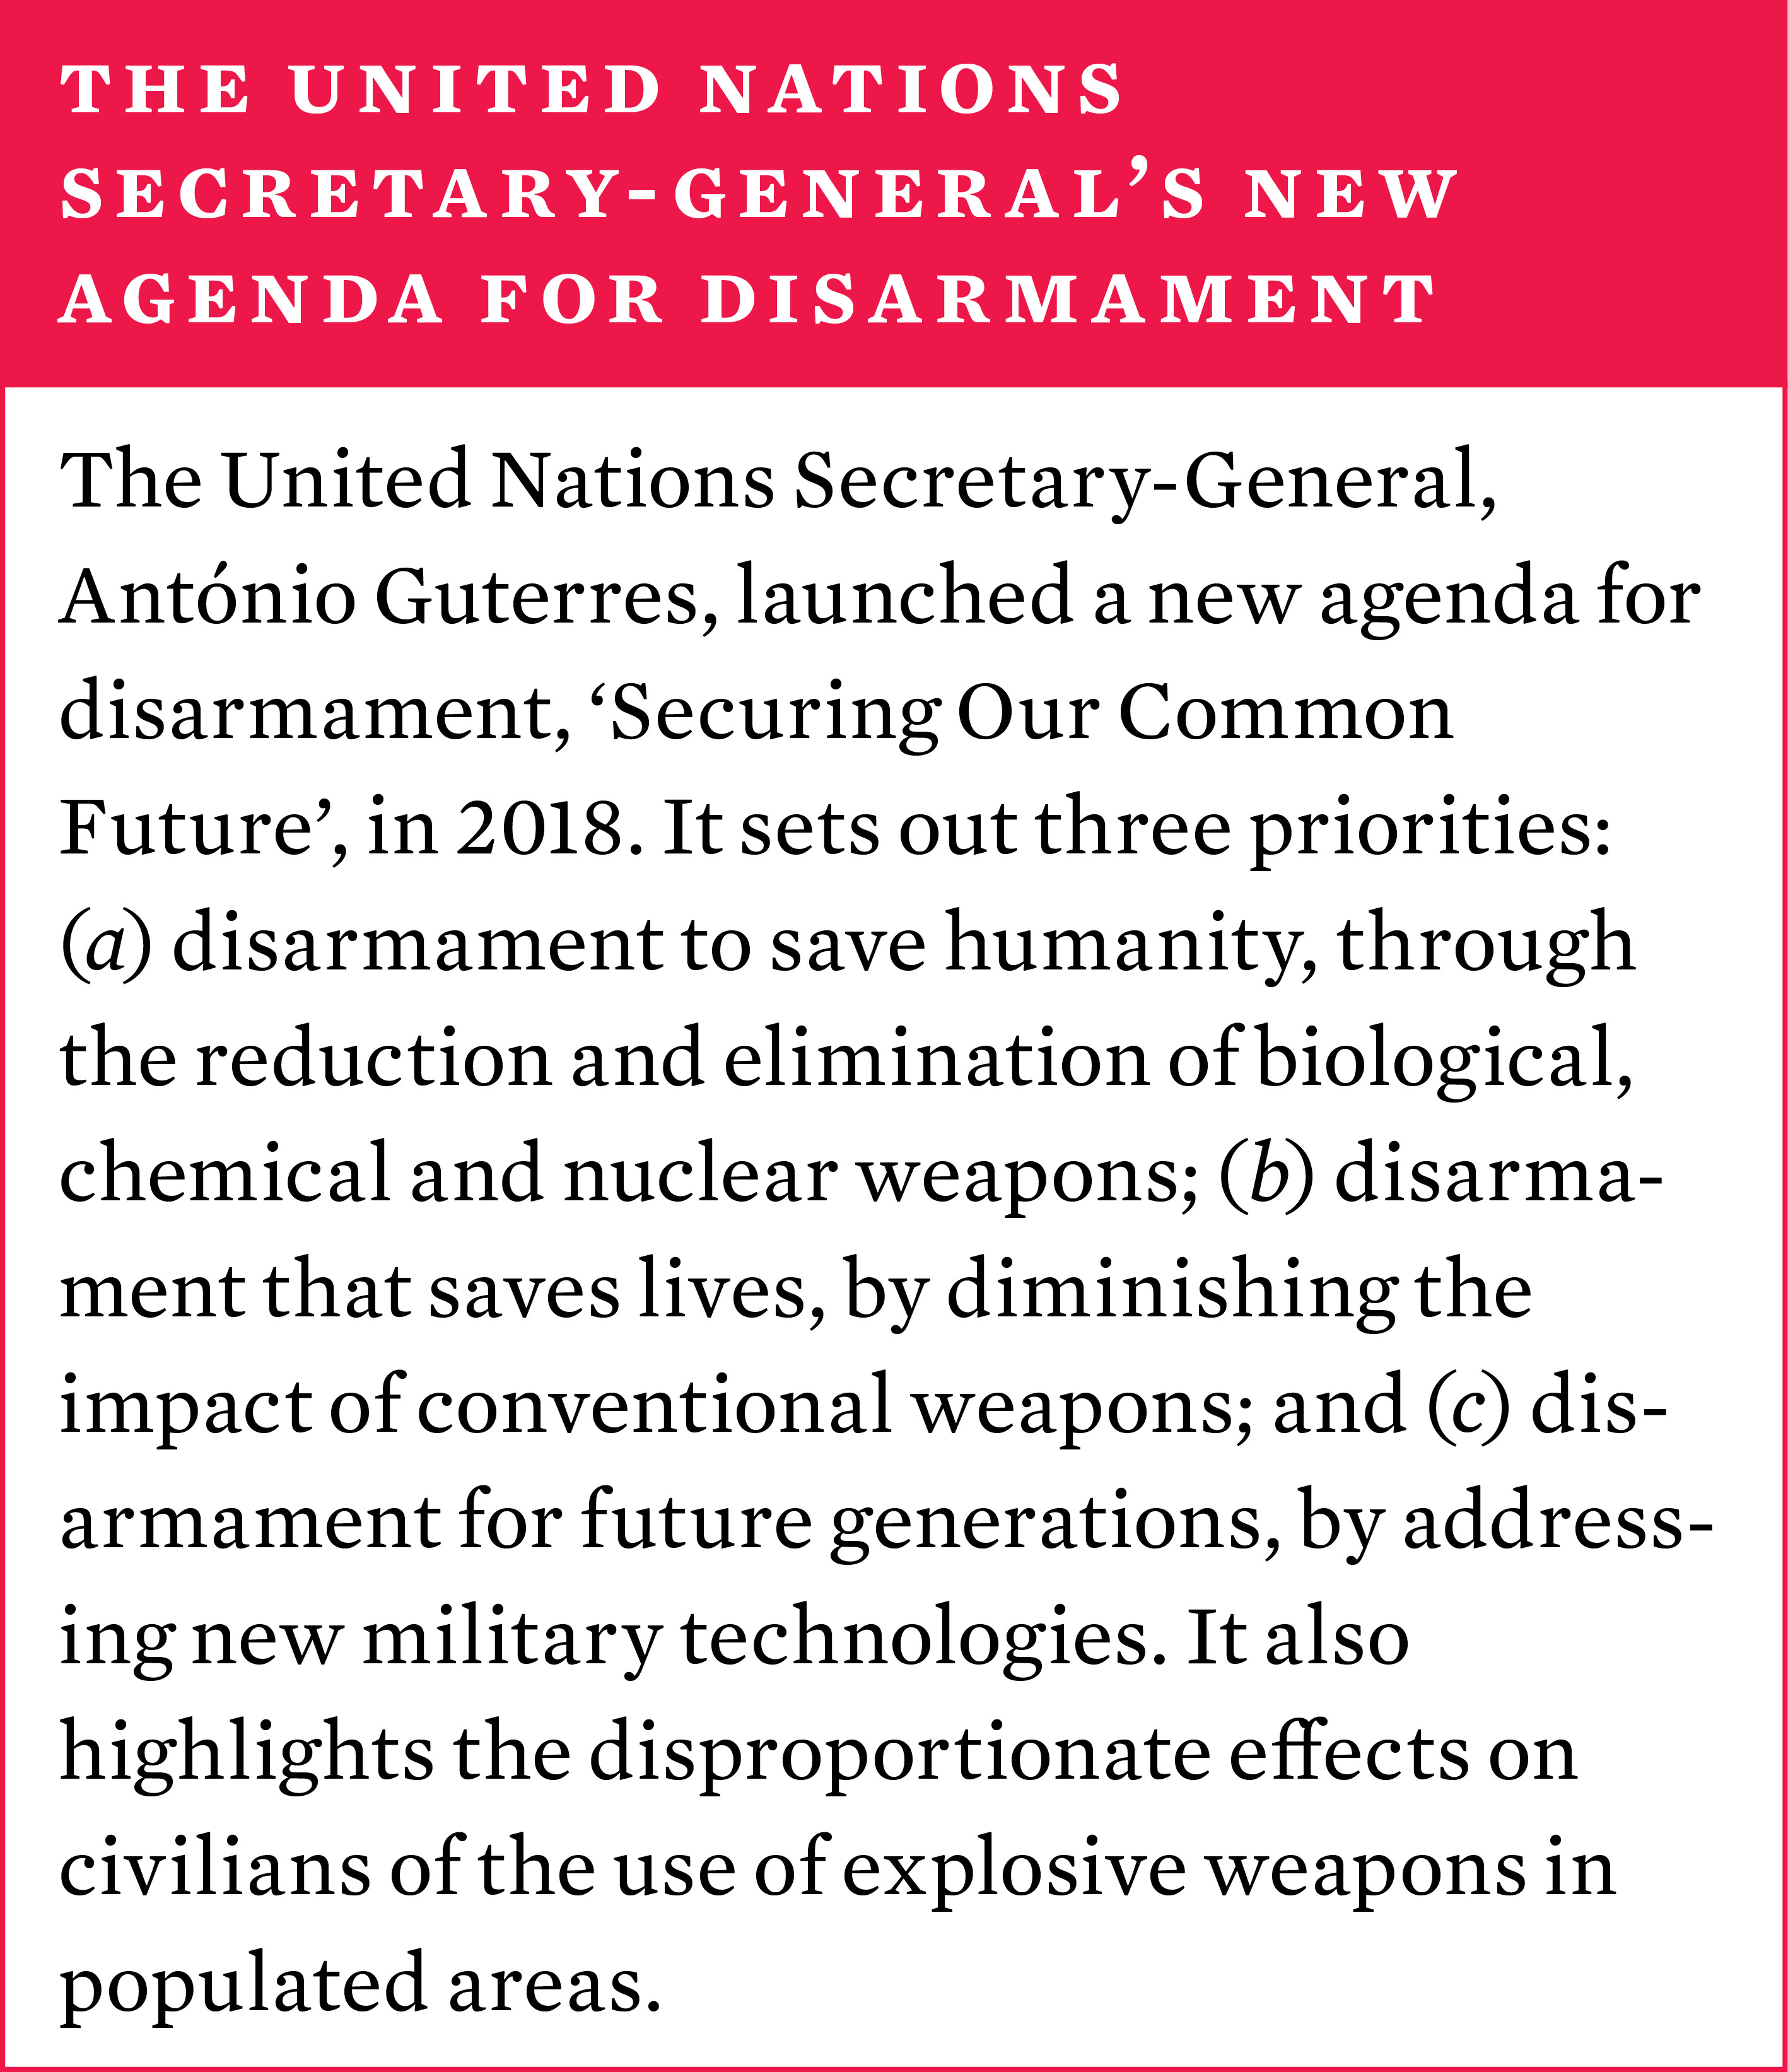 The United Nations Secretary-General's new agenda for disarmament